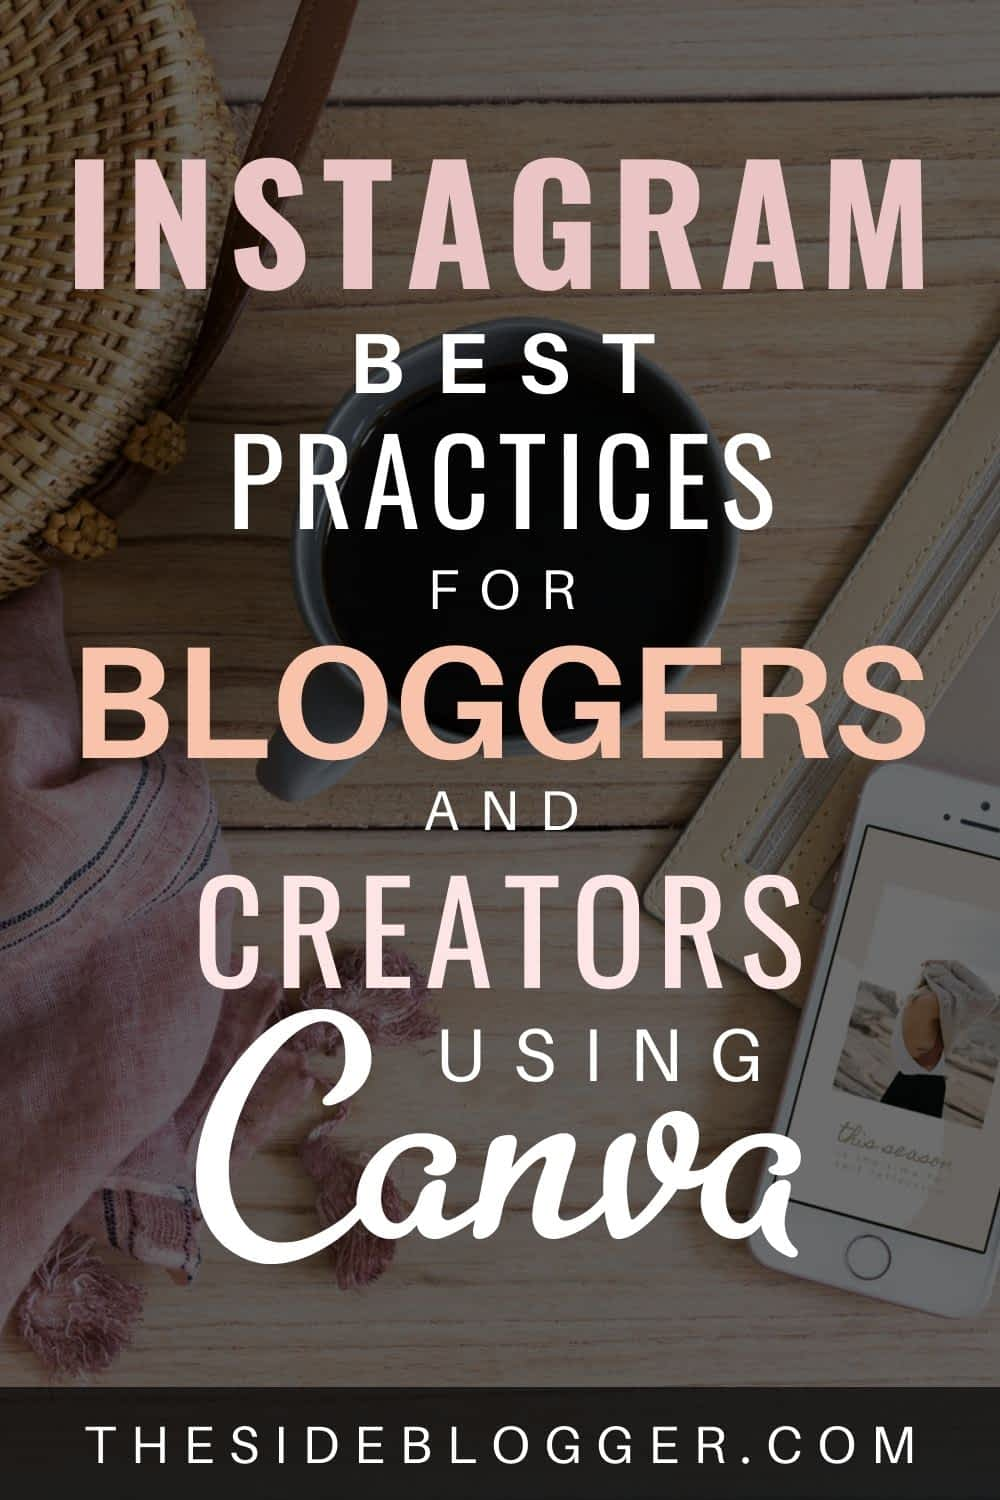 Scheduling Instagram posts with Canva